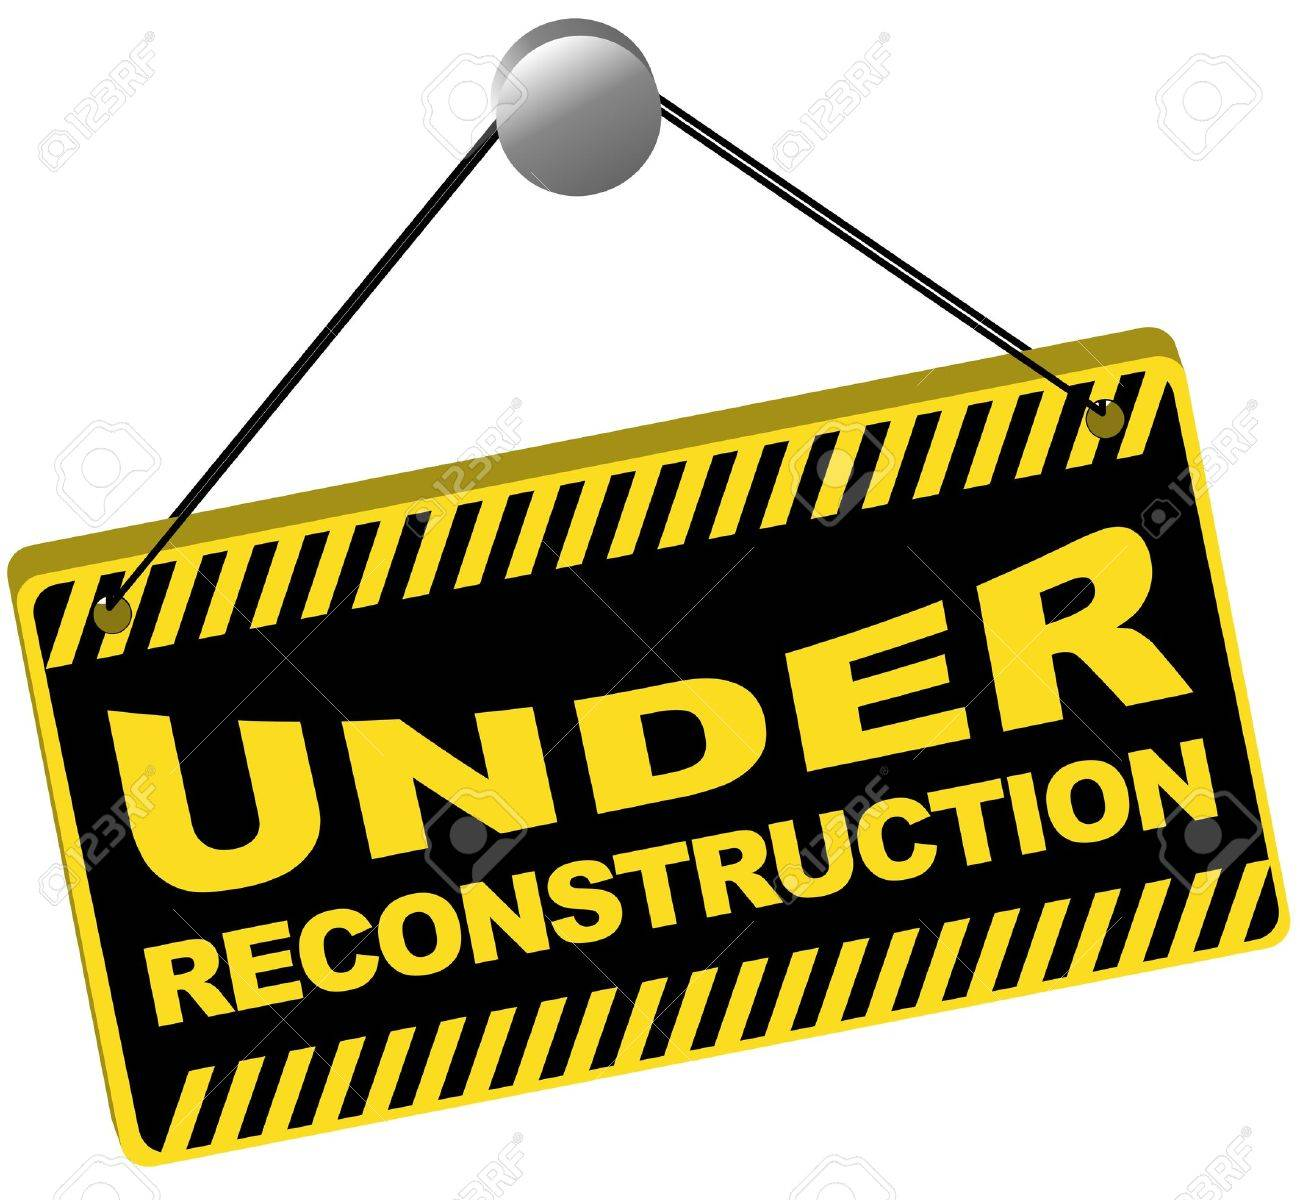 Web Icon -Under Reconstruction Sign Isolated on White - 8690439